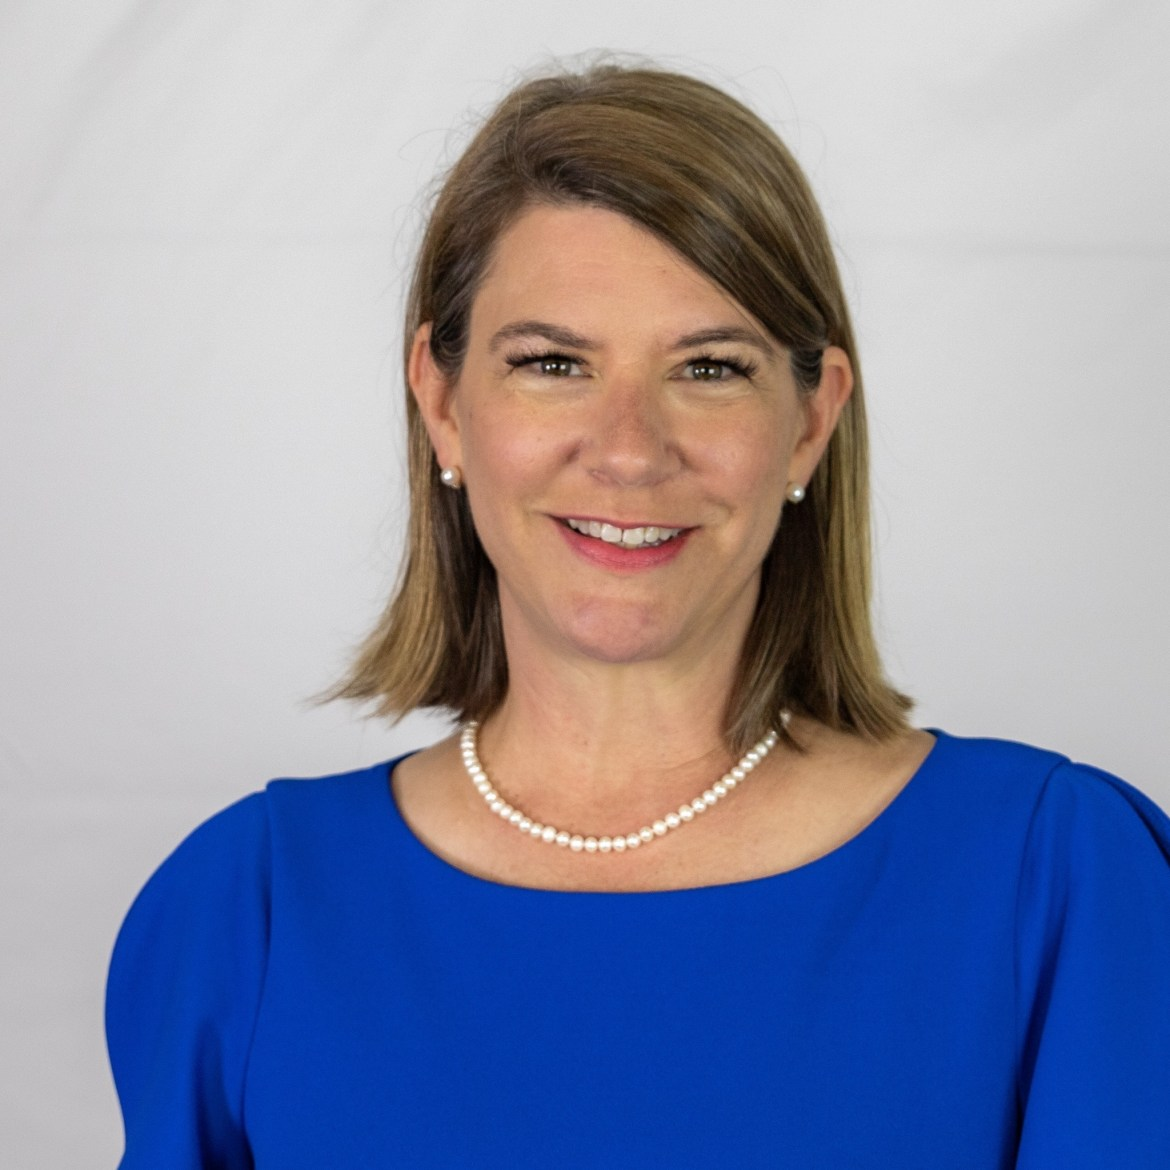 Interview With Gwenn Burud – Candidate For Texas State Senate District 9